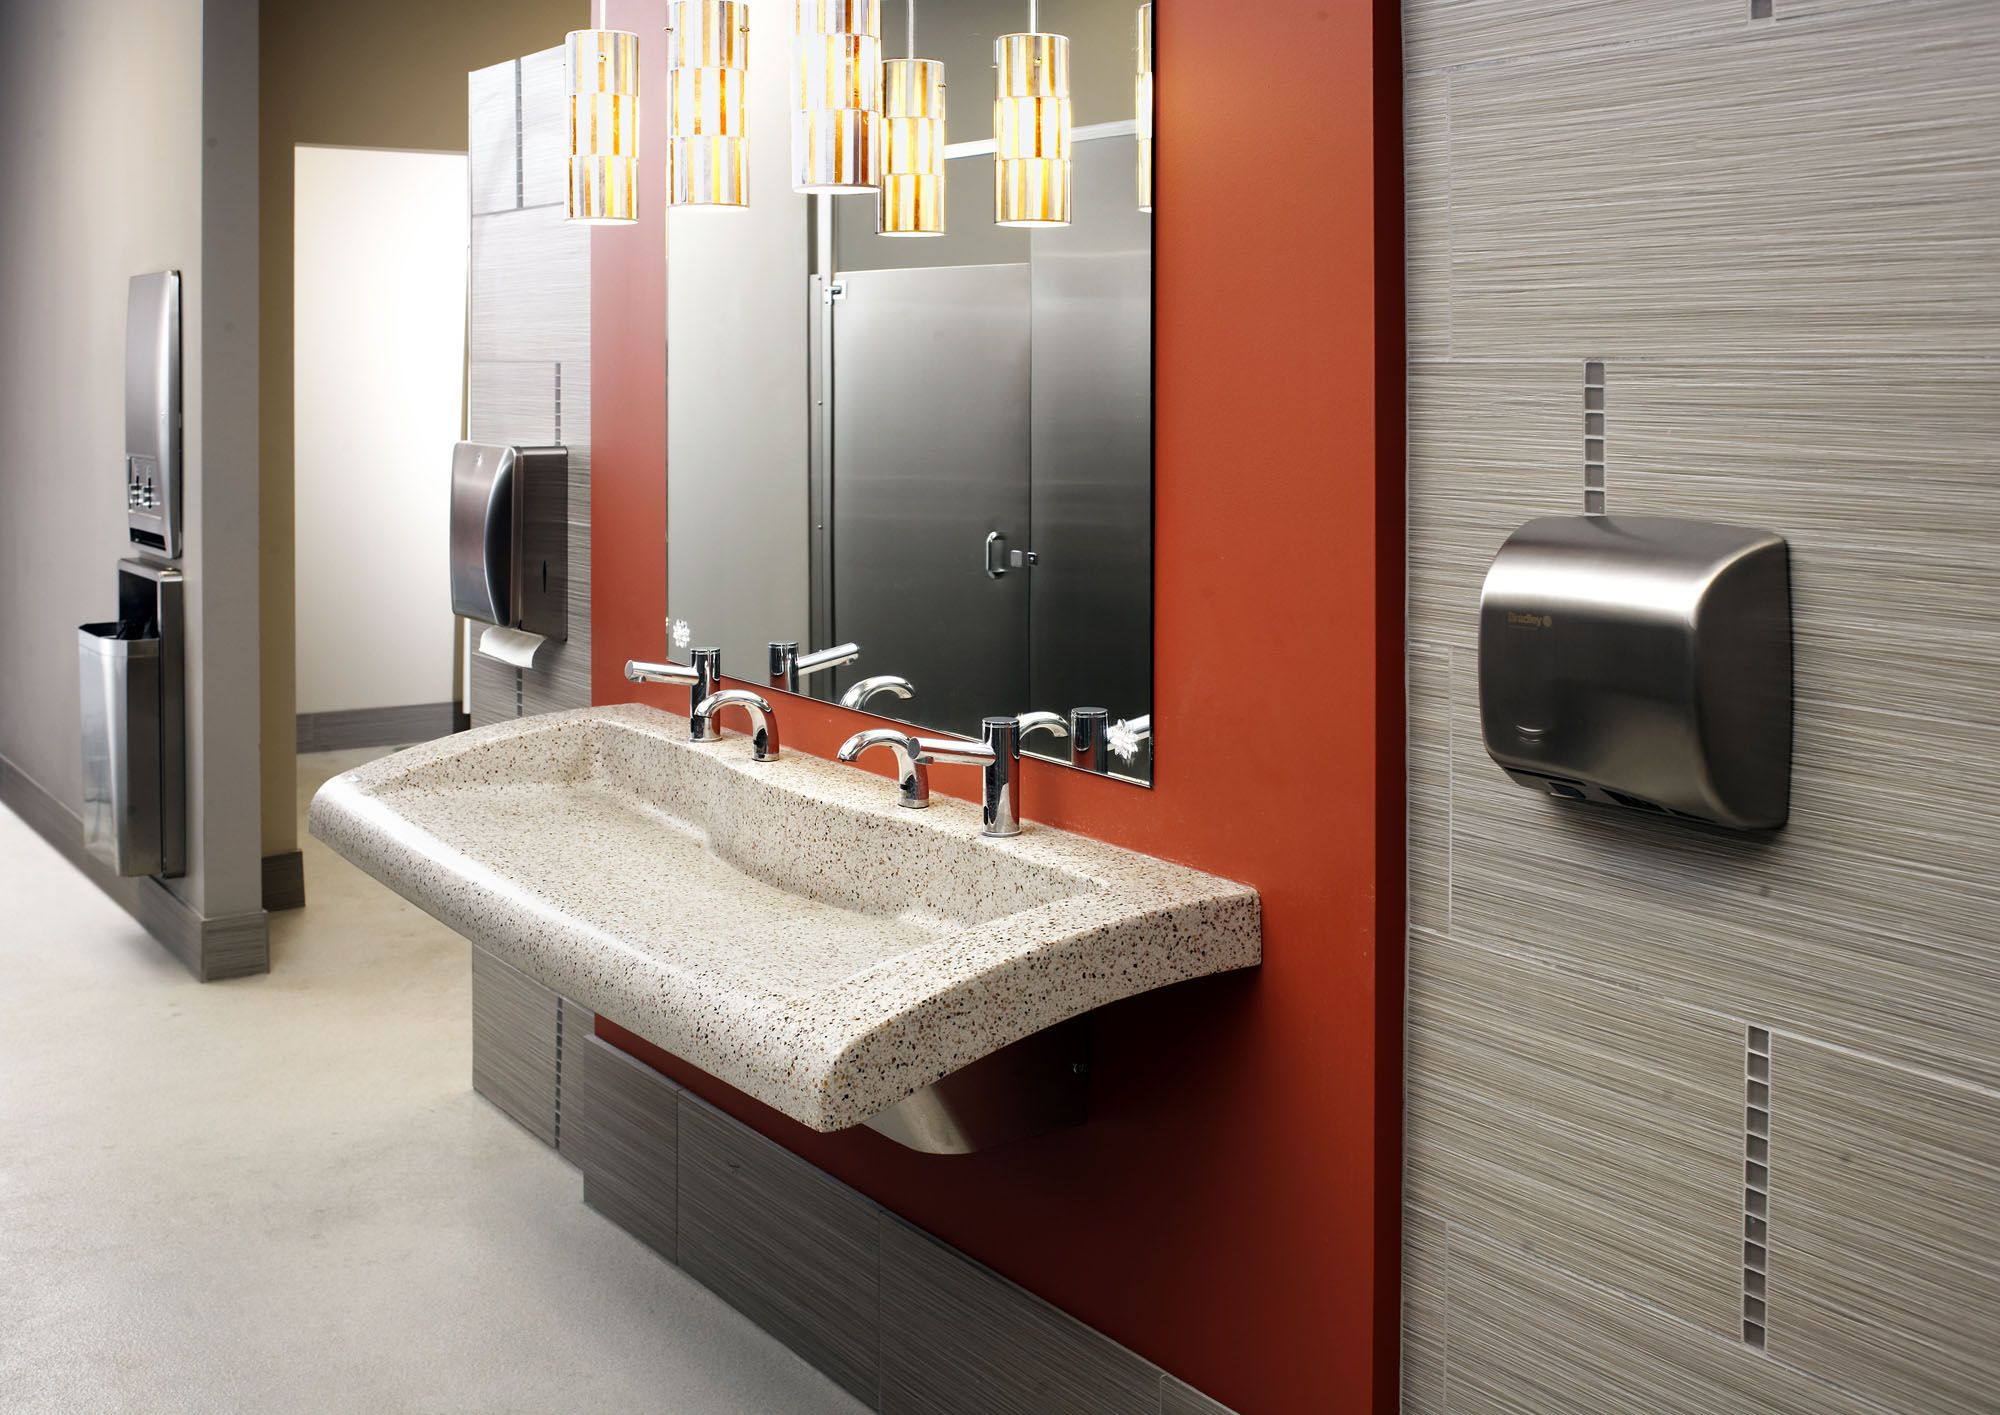 Keep office restrooms efficient with the Verge Lavatory System  Diplomat  accessories  and Mills Stainless. Keep office restrooms efficient with the Verge Lavatory System